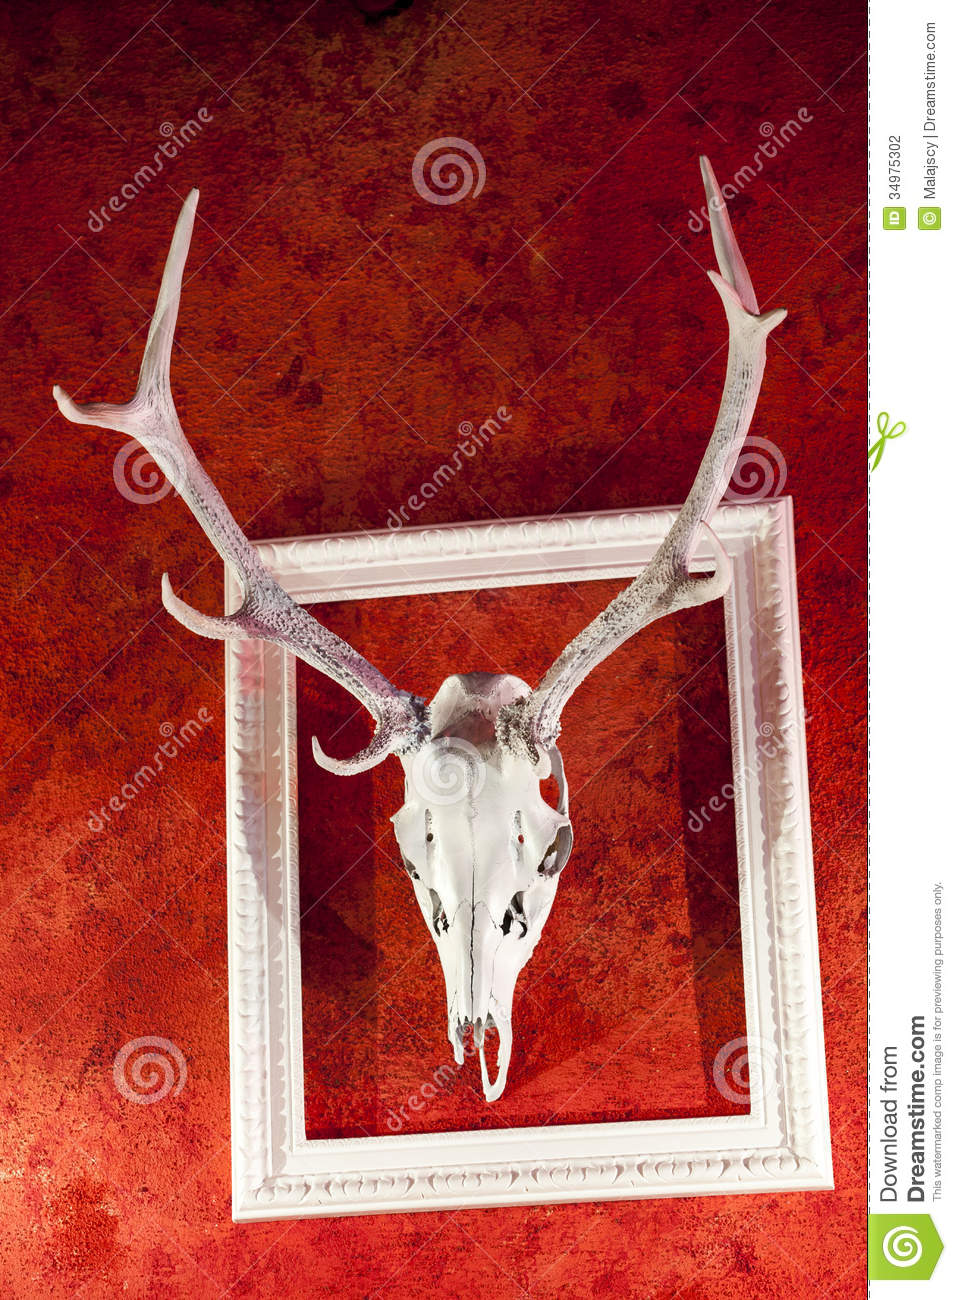 Deer Antlers in the Frame stock photo. Image of copy - 34975302